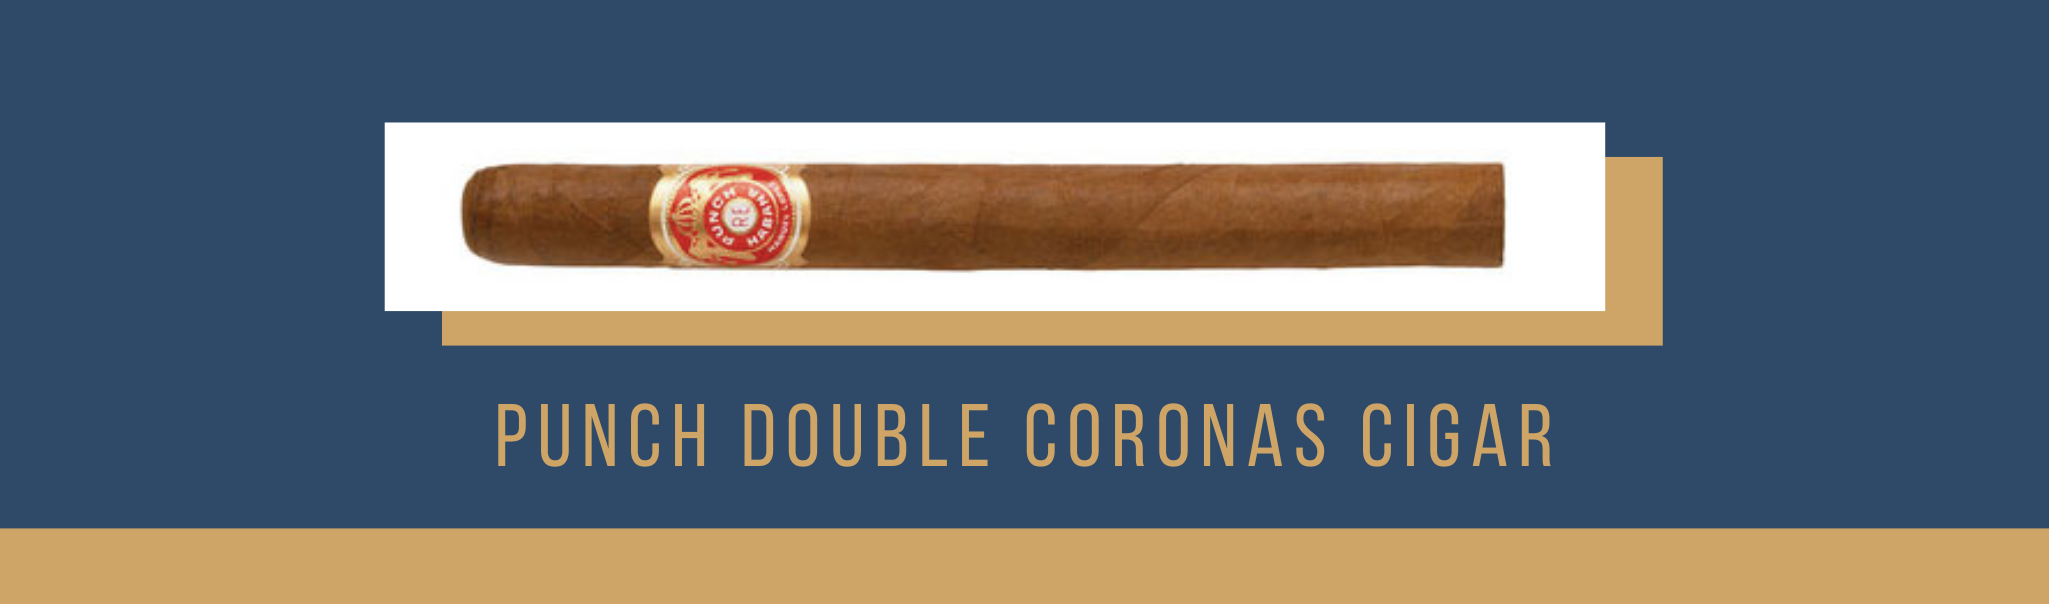 Buy the punch double coronas cigar now